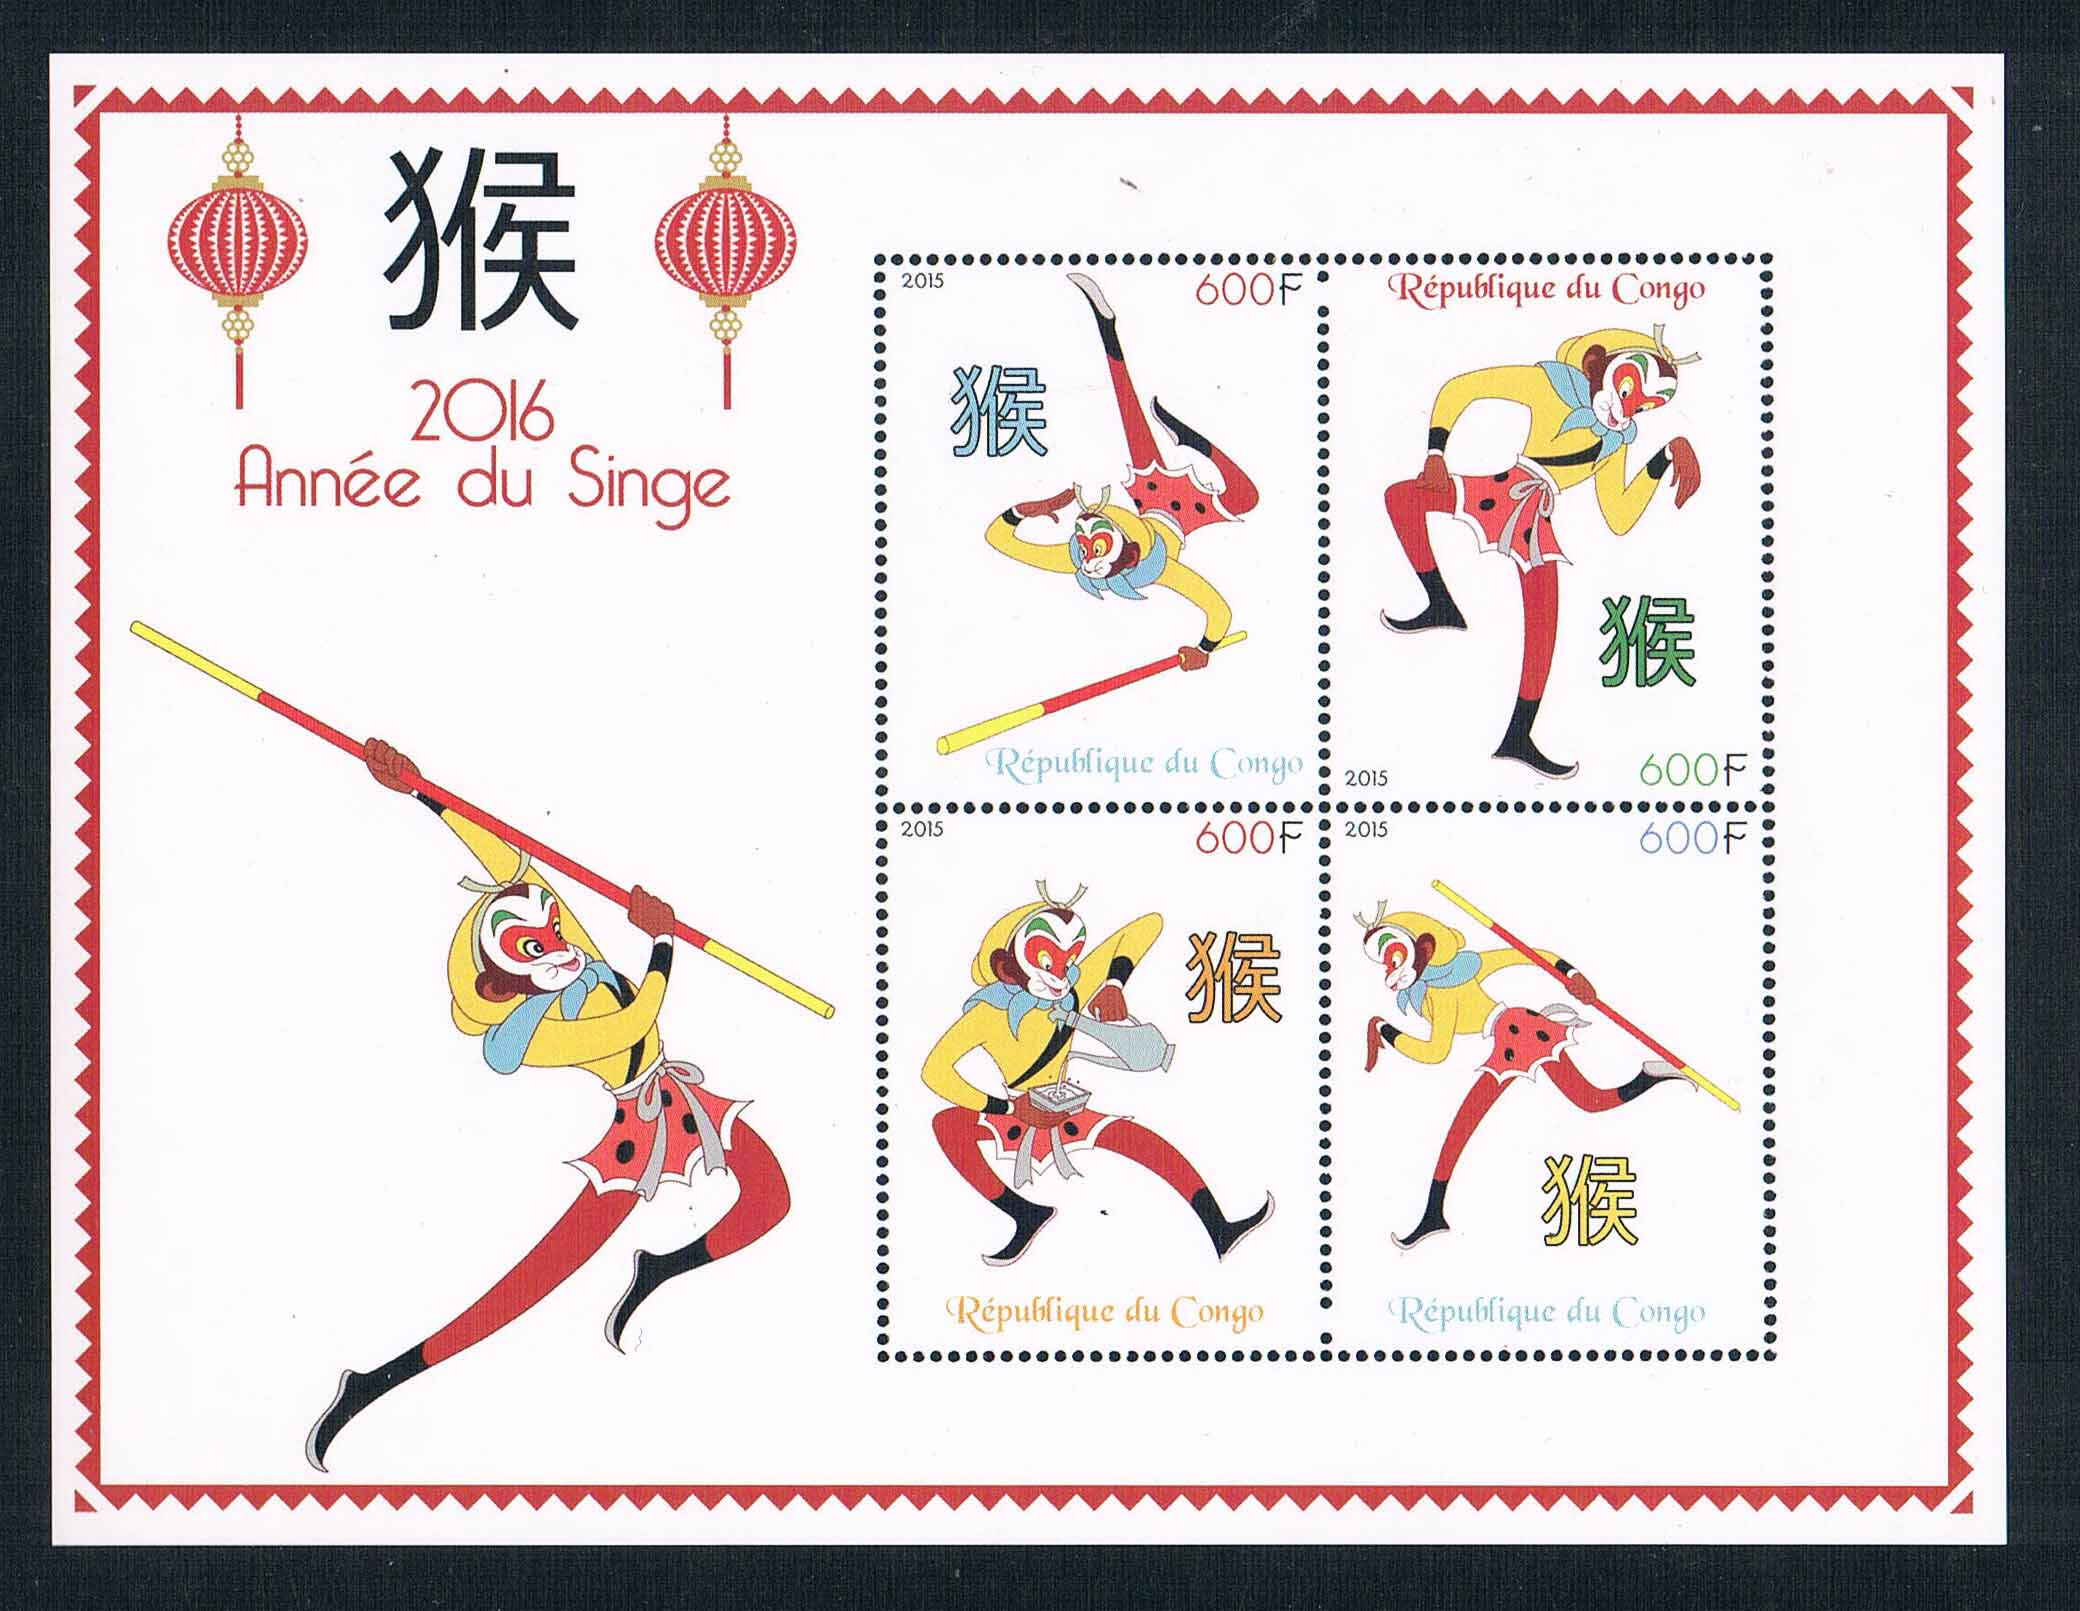 CX0554 Congo 2015 China bingshen year Sun Wukong Zodiac stamps 1MS new 0921 sun 2015 june4